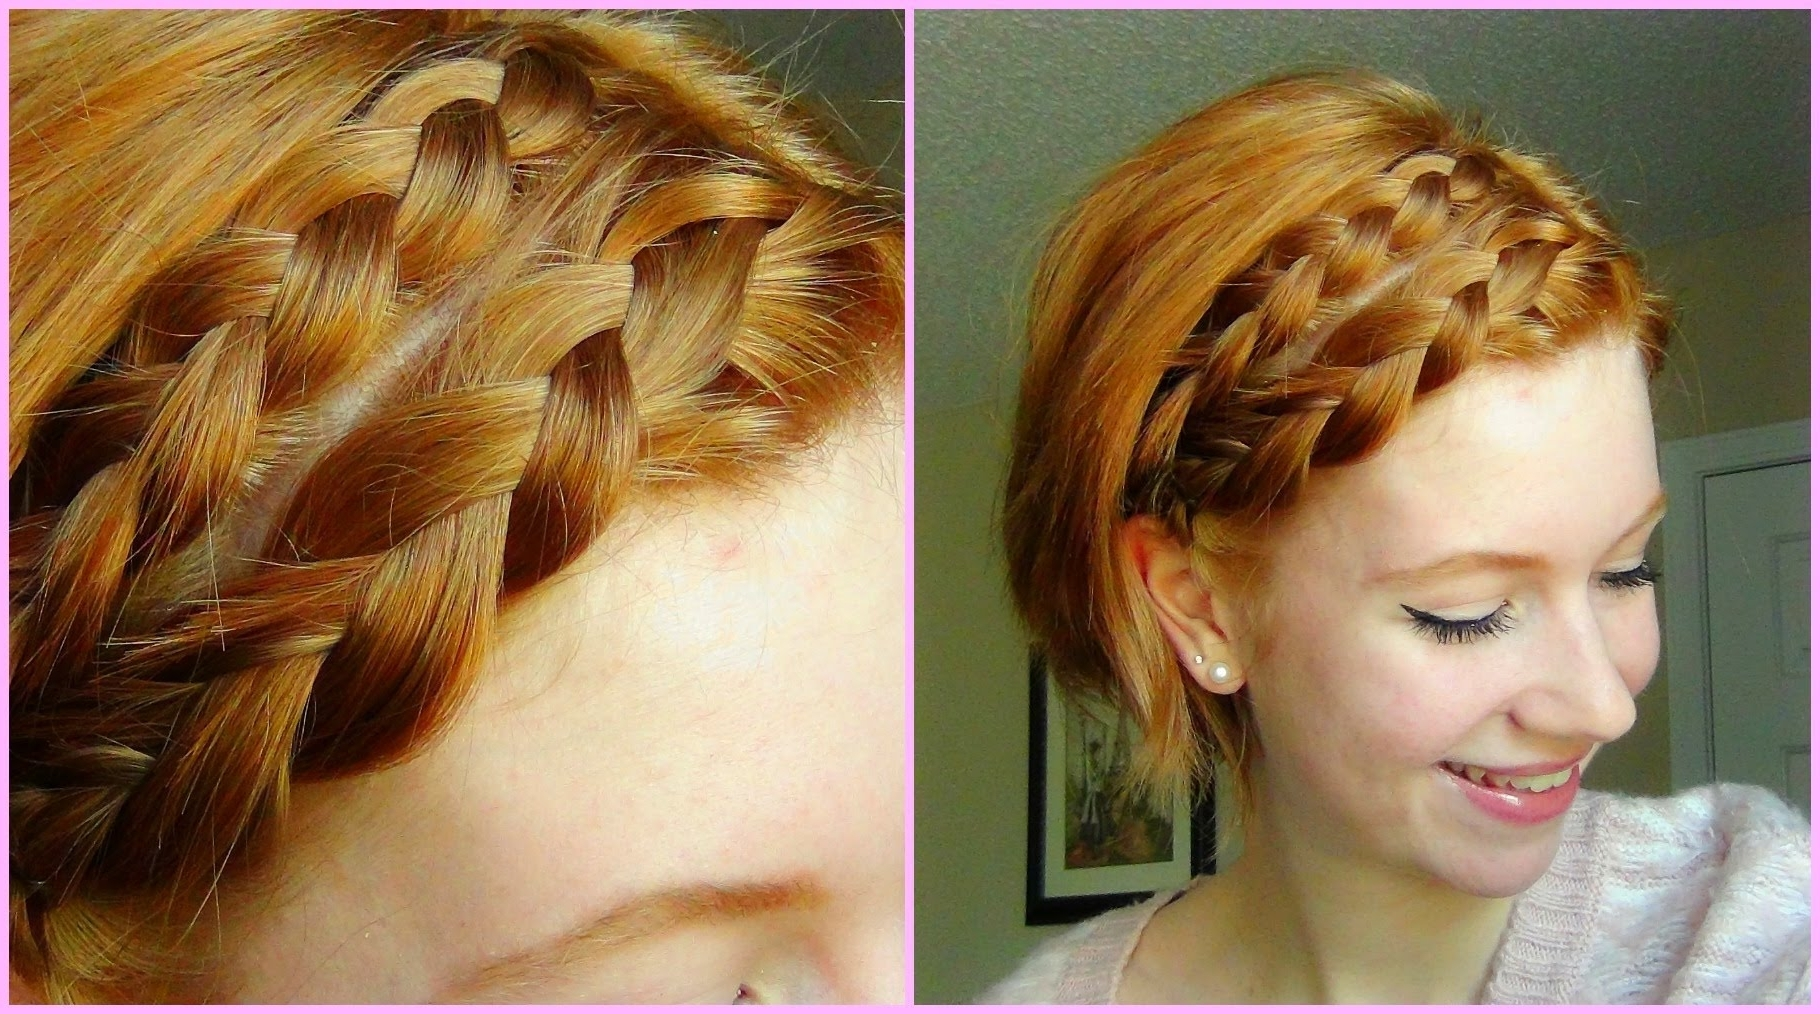 Best And Newest Short Braided Hairstyles Inside Double Dutch Braid Hair Tutorial! Short Hair ♥ – Youtube (View 5 of 15)